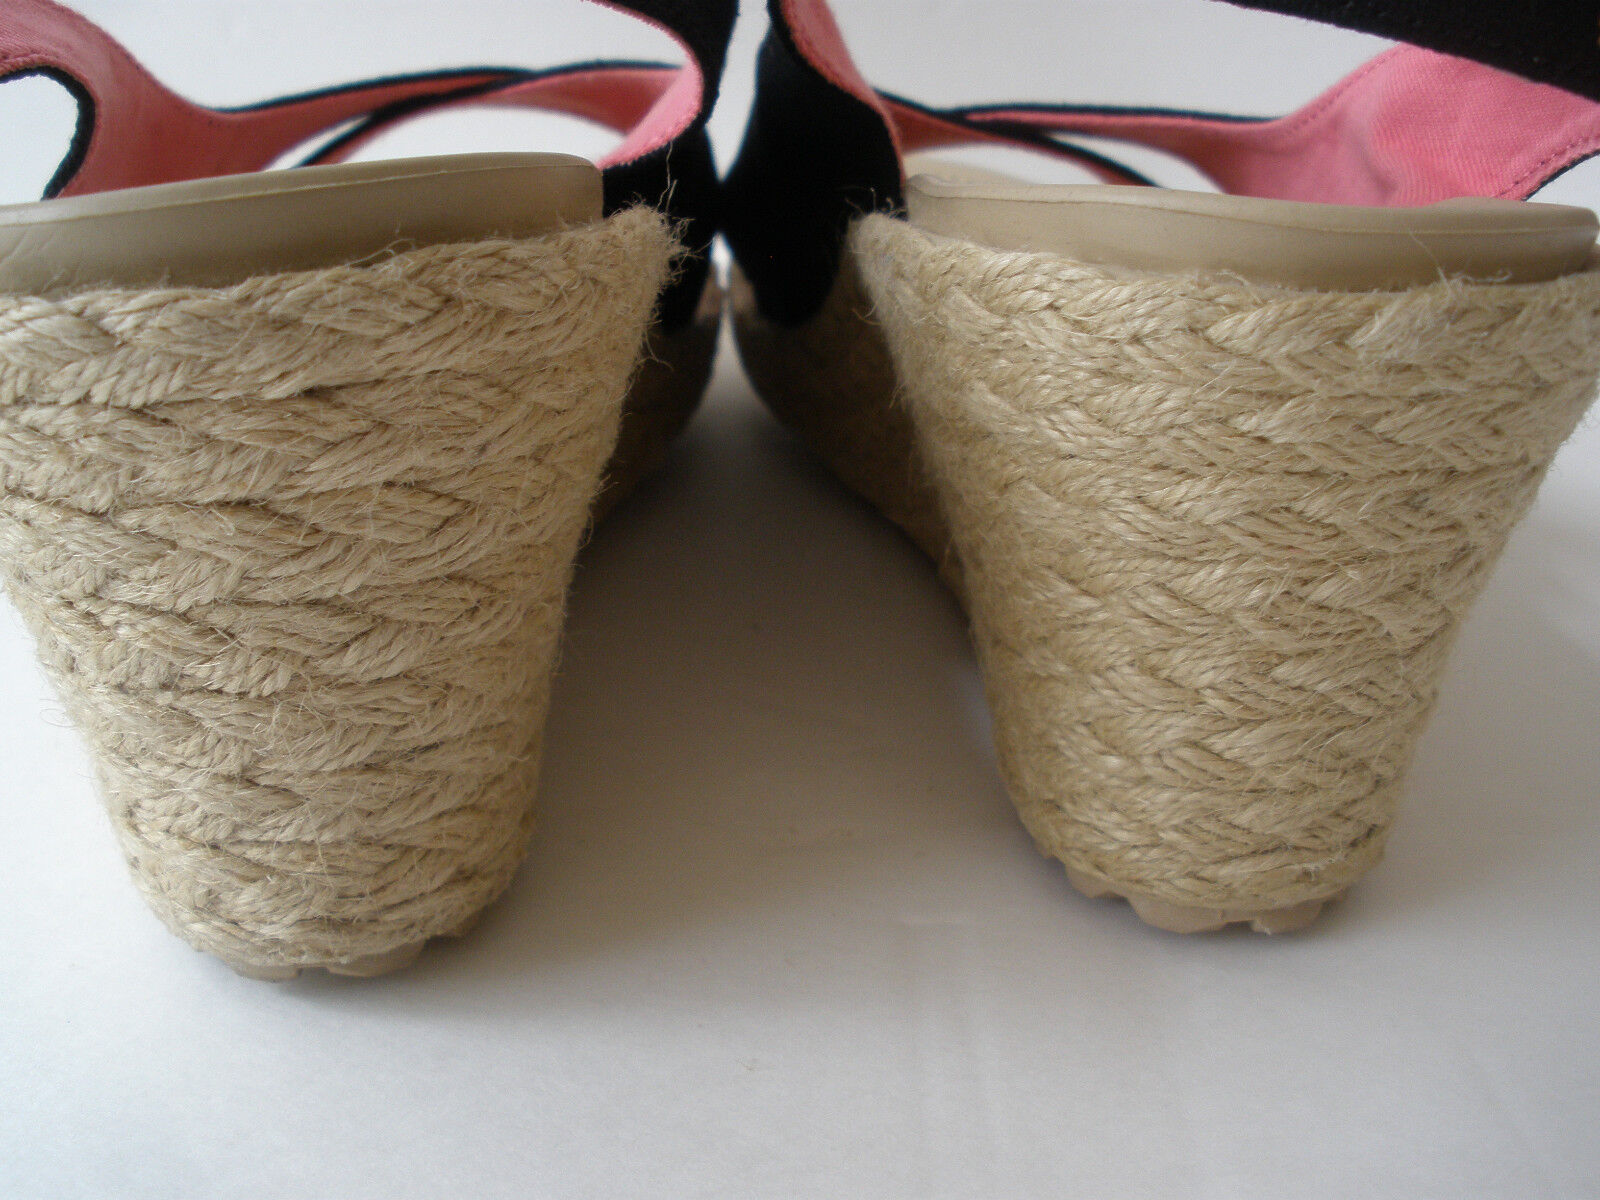 CROCKS LINEN FABRIC FABRIC FABRIC WEDGE SANDAL WOMEN SIZE US 9 VERY NICE be29ed